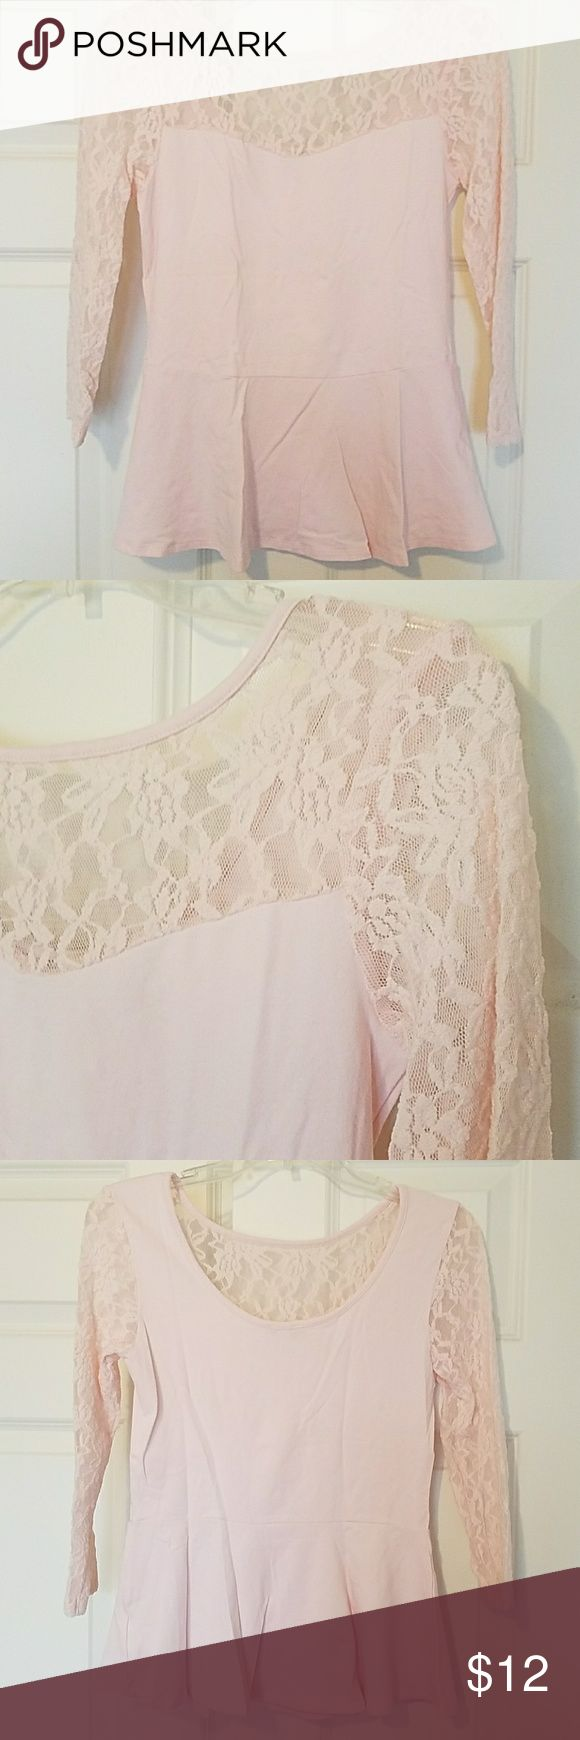 NWOT Pink lace peplum top Baby pink peplum top with lace and scoop back. 95% cotton, 5% spandex. Trim is 100% nylon. Never been worn! Express Tops